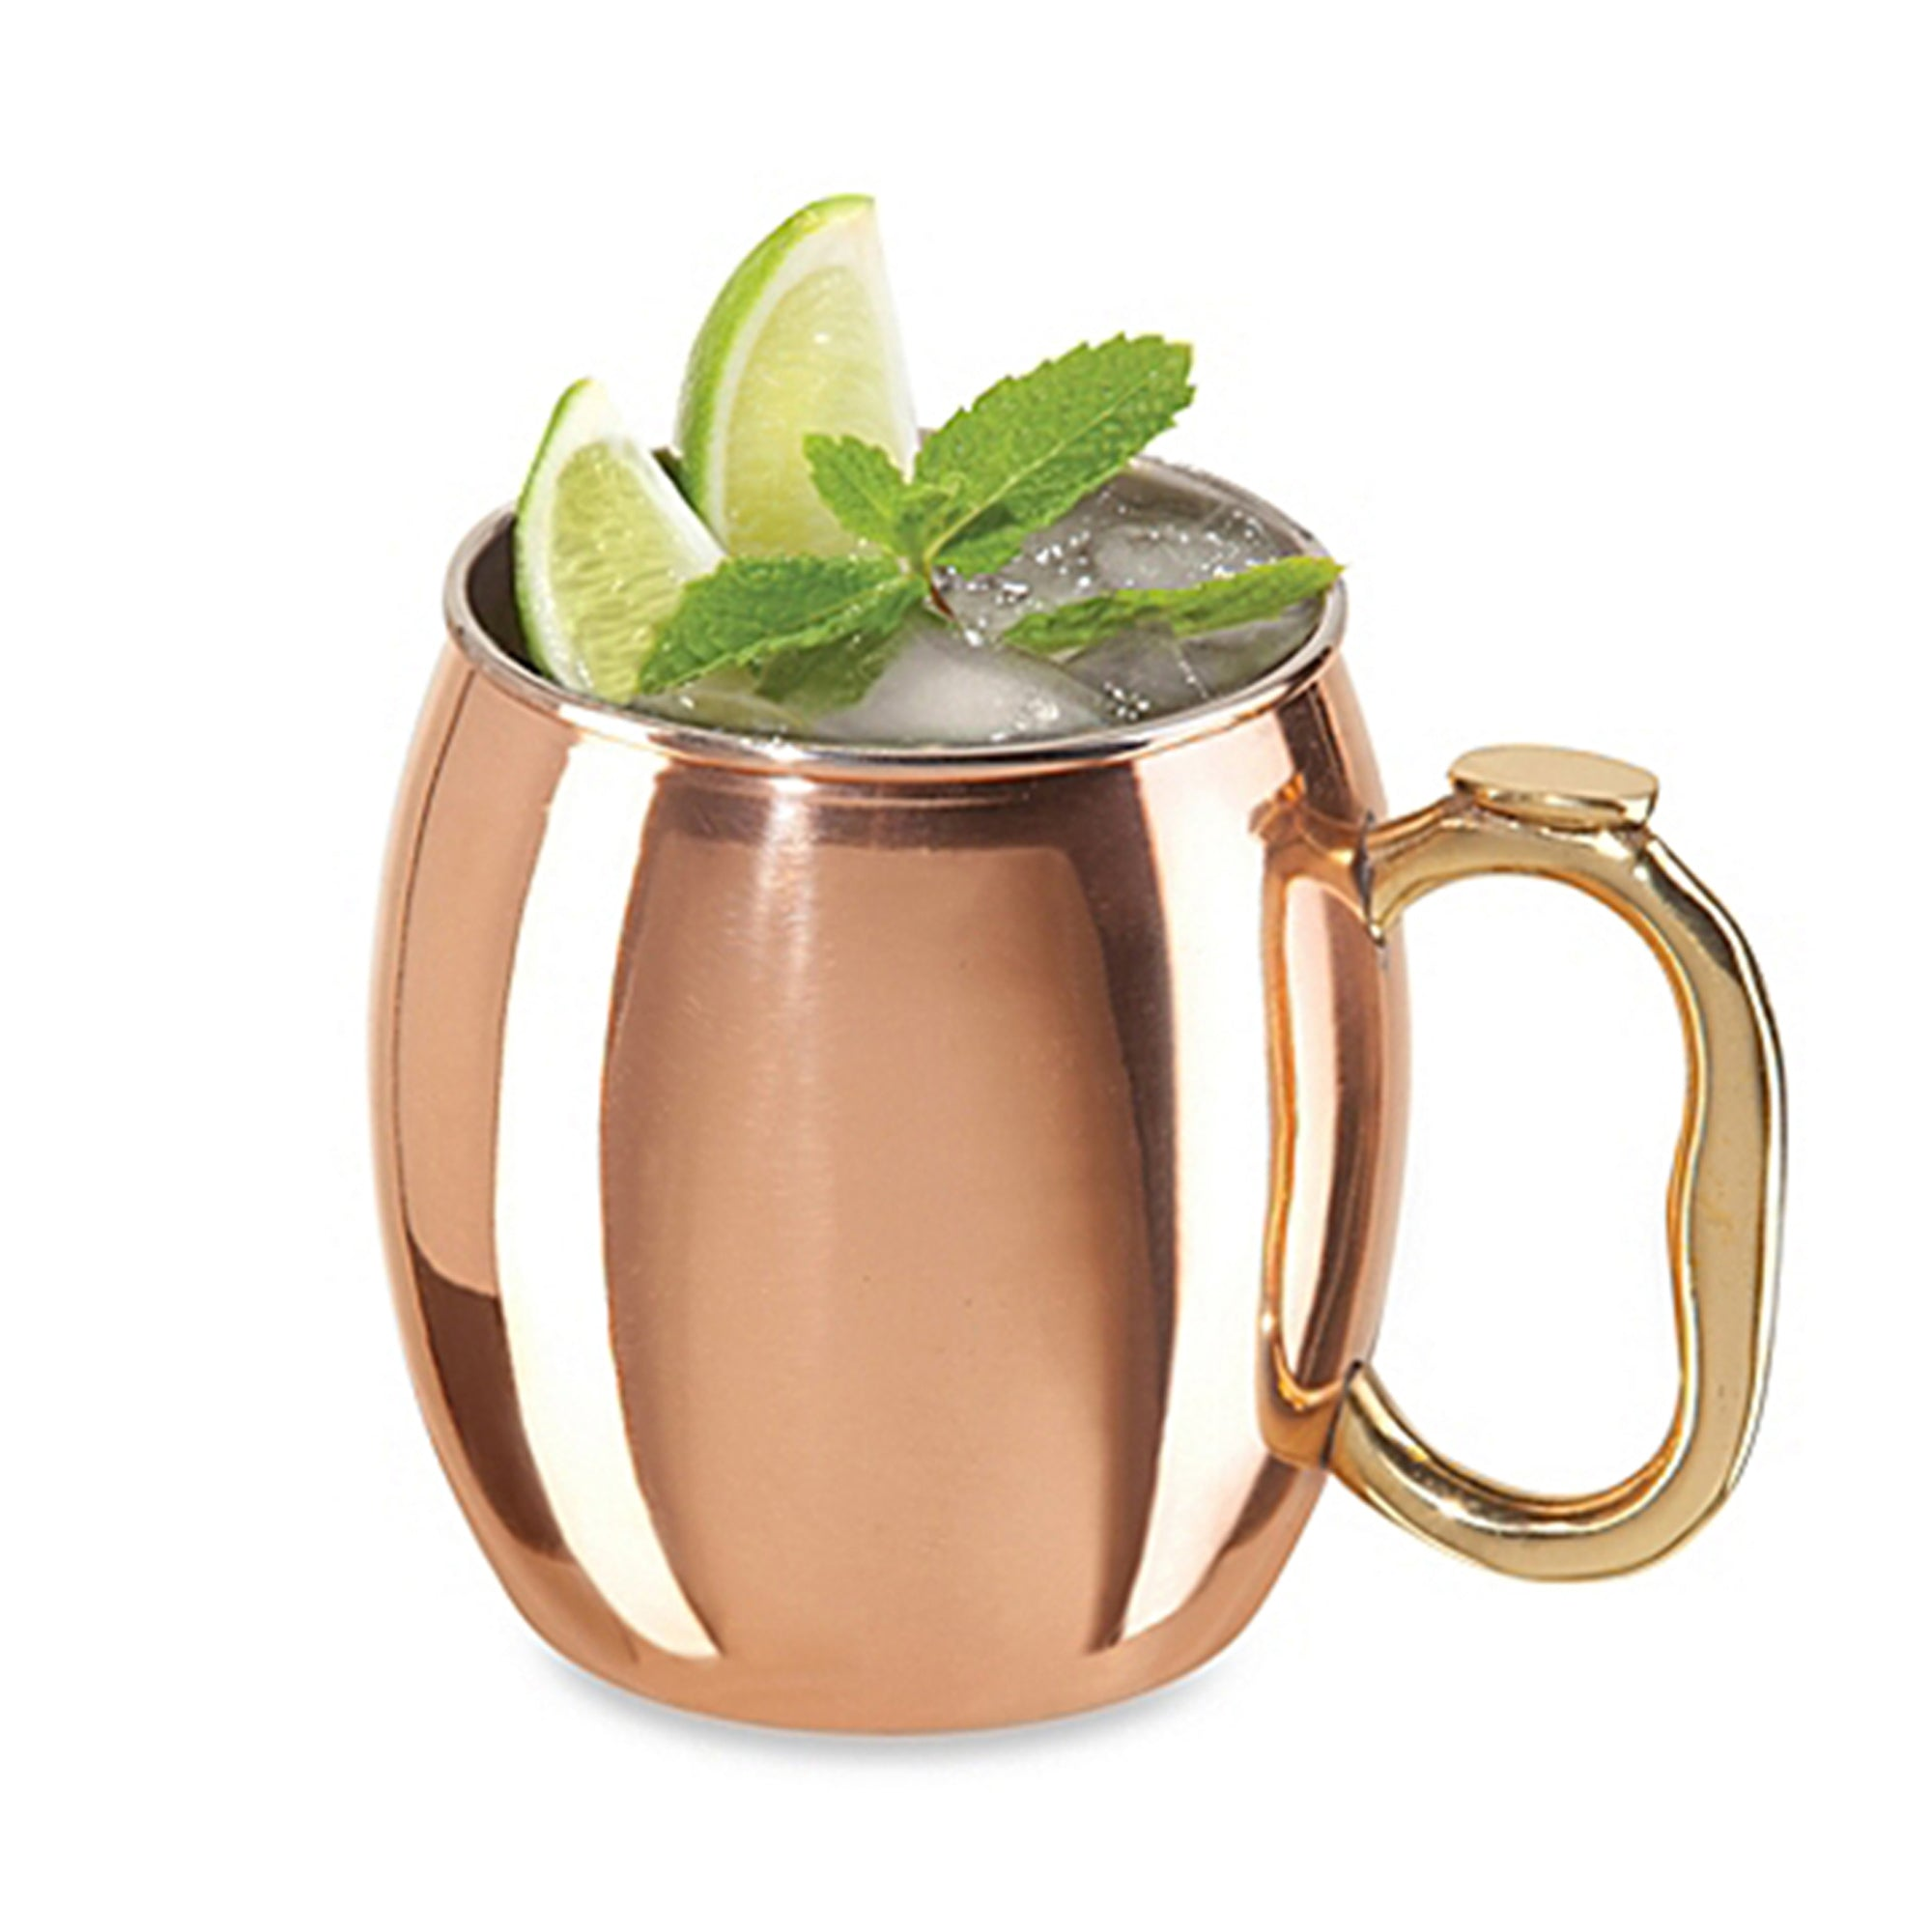 Moscow mule mug - copper plated 22oz MM-51